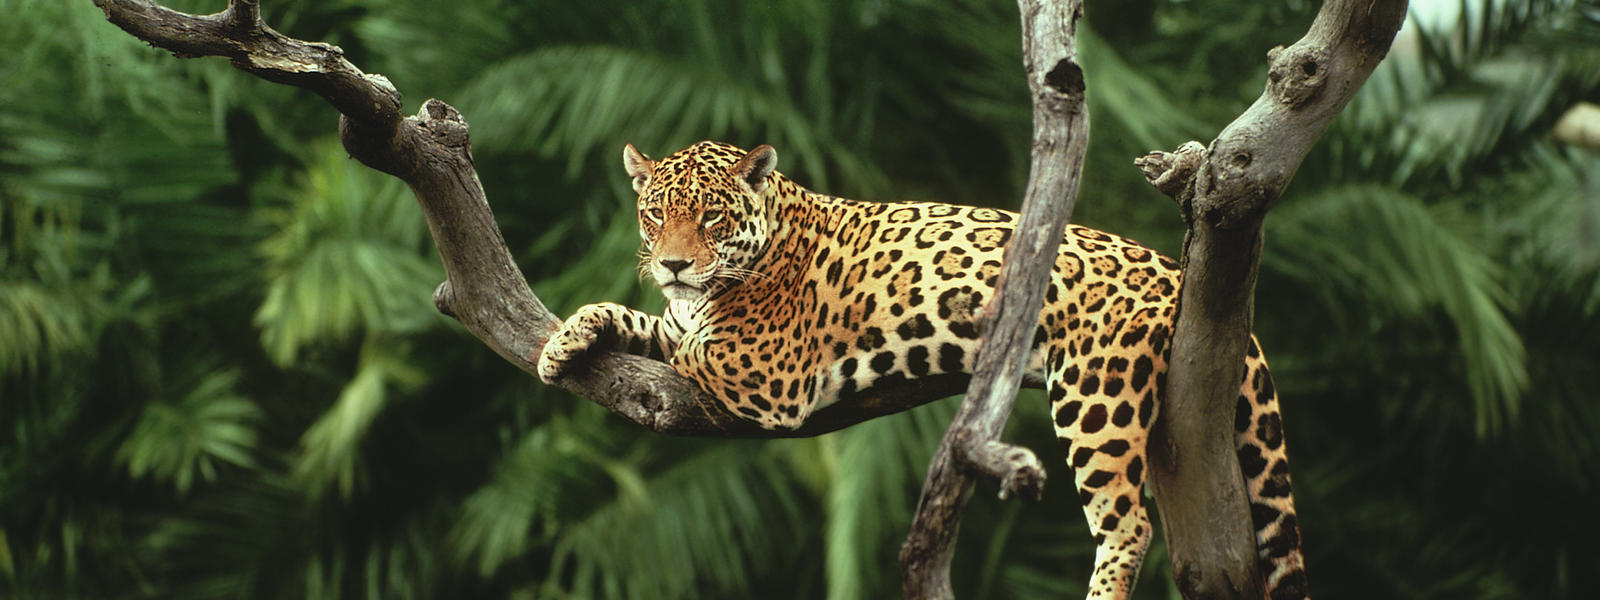 Jaguar species wwf responsible forstry biodiversity loss voltagebd Gallery